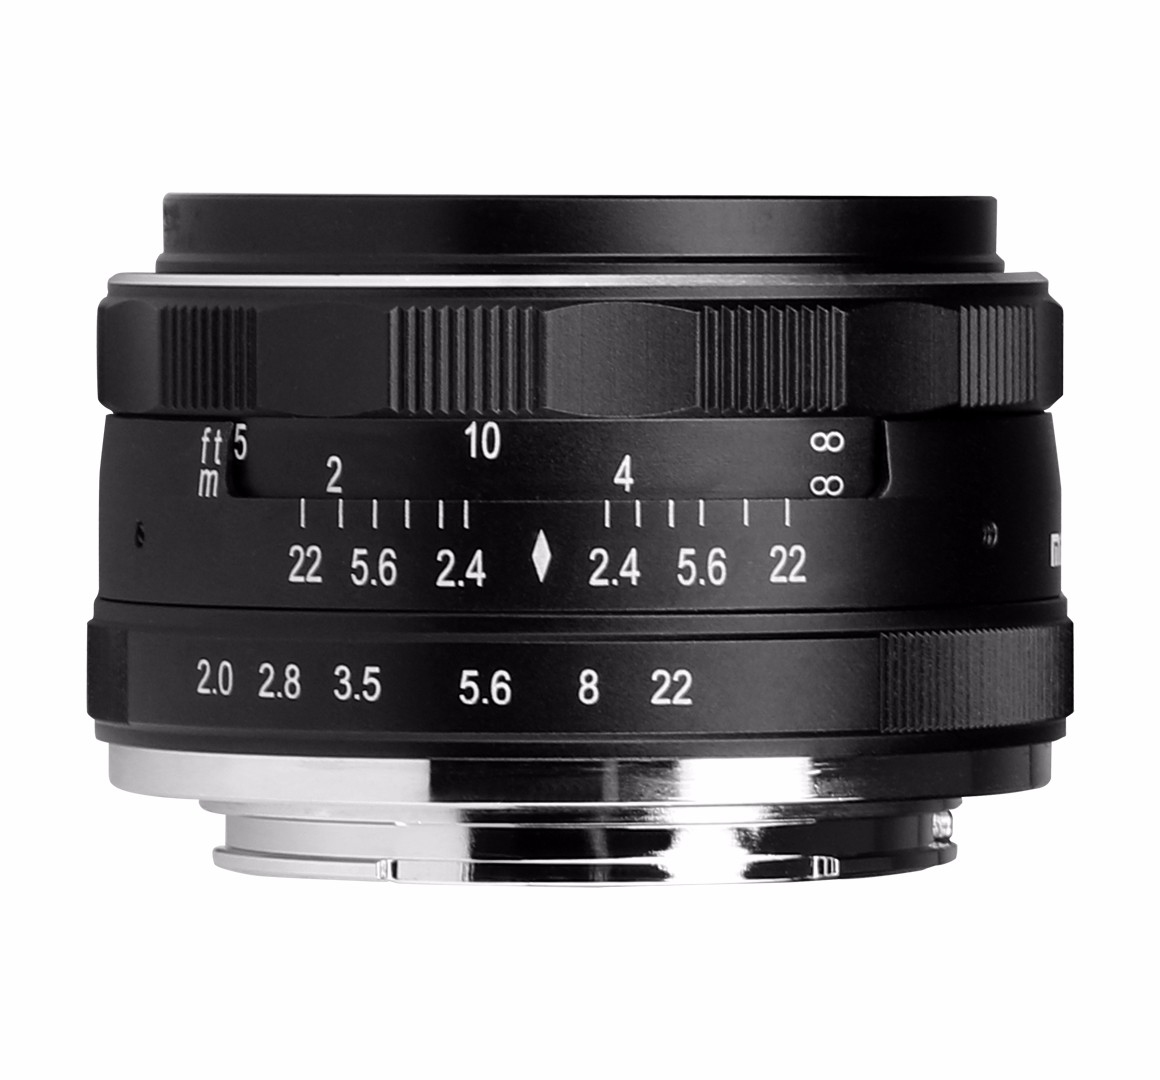 Meike MK-EM-50-2.8 50mm f2.8 For Large Aperture Manual Focus lens APS-C For Canon for EOS M1 M2 M3 CameraMeike MK-EM-50-2.8 50mm f2.8 For Large Aperture Manual Focus lens APS-C For Canon for EOS M1 M2 M3 Camera